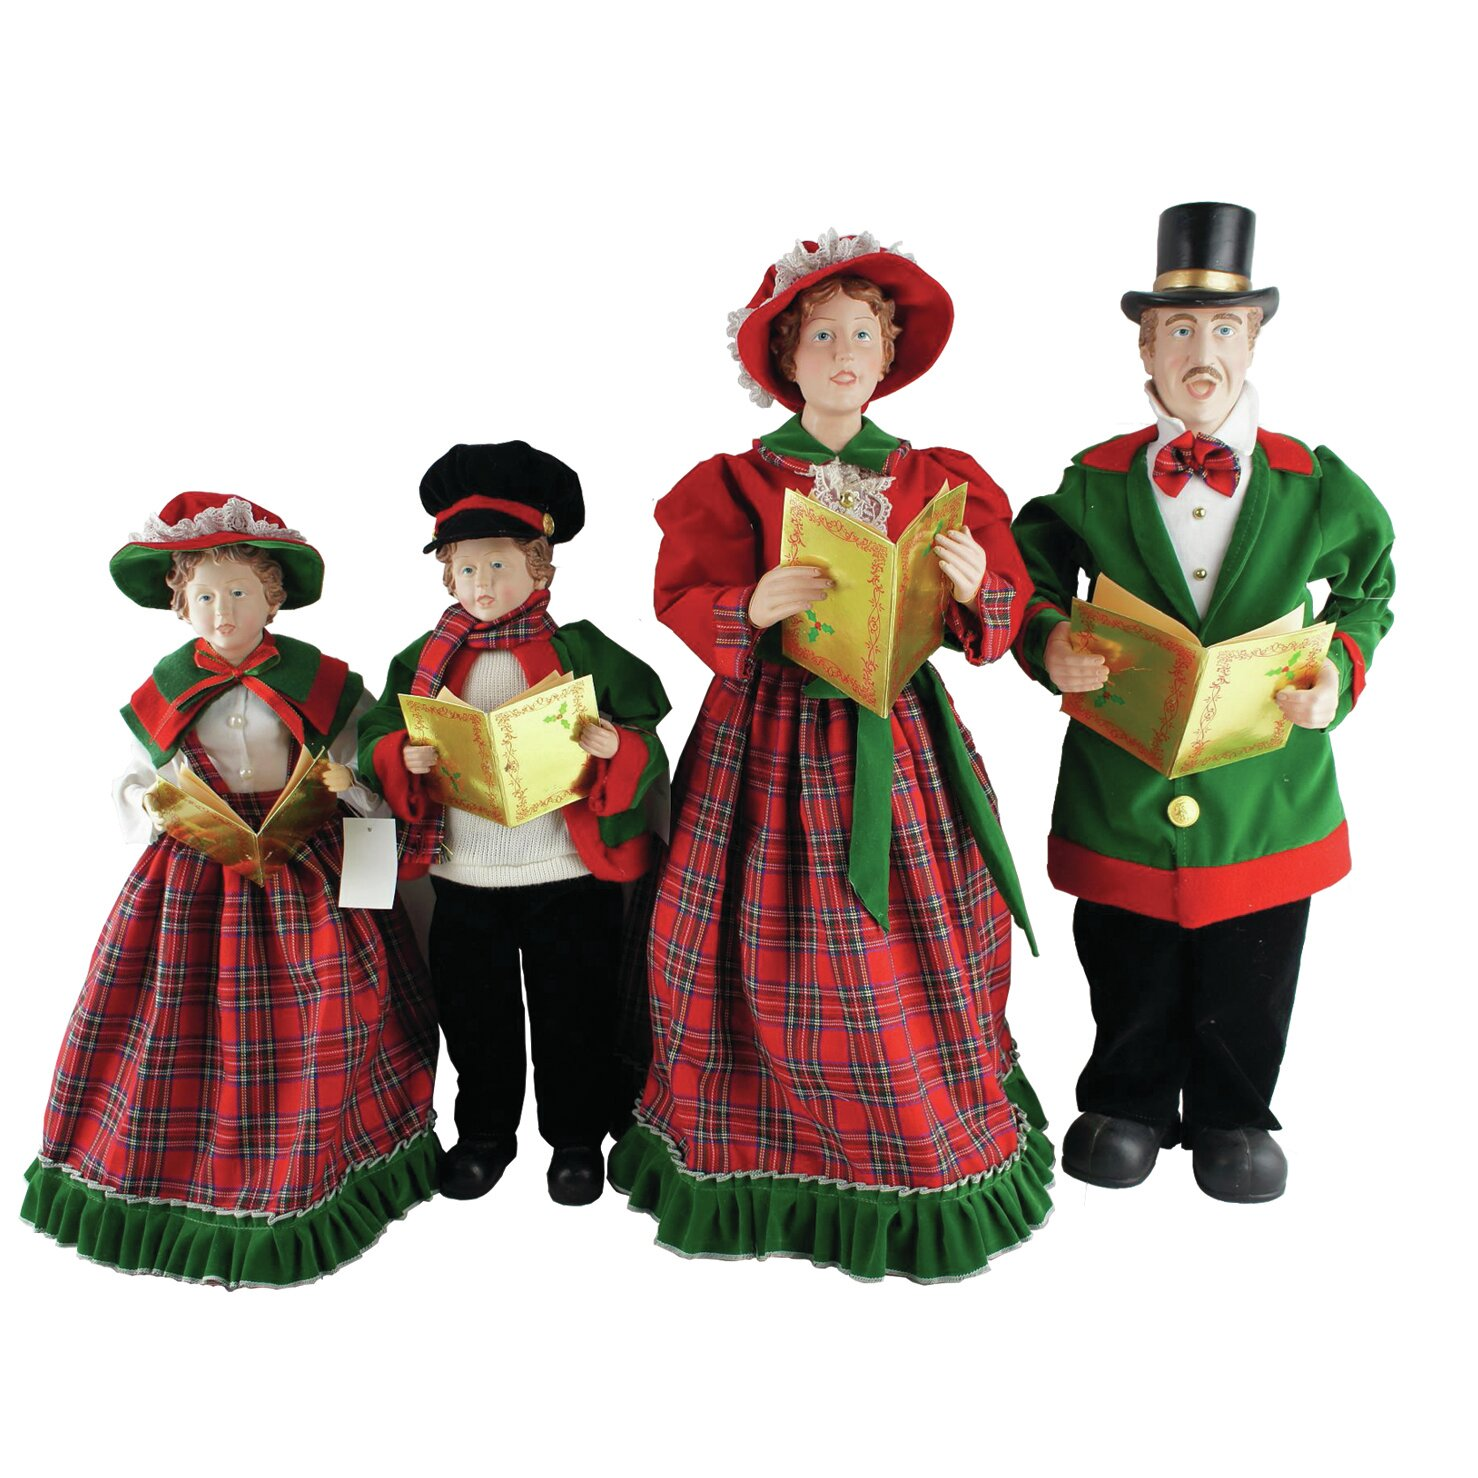 Victorian Christmas Carolers Figurines: Santa's Workshop 4 Piece Christmas Day Caroler Figurine